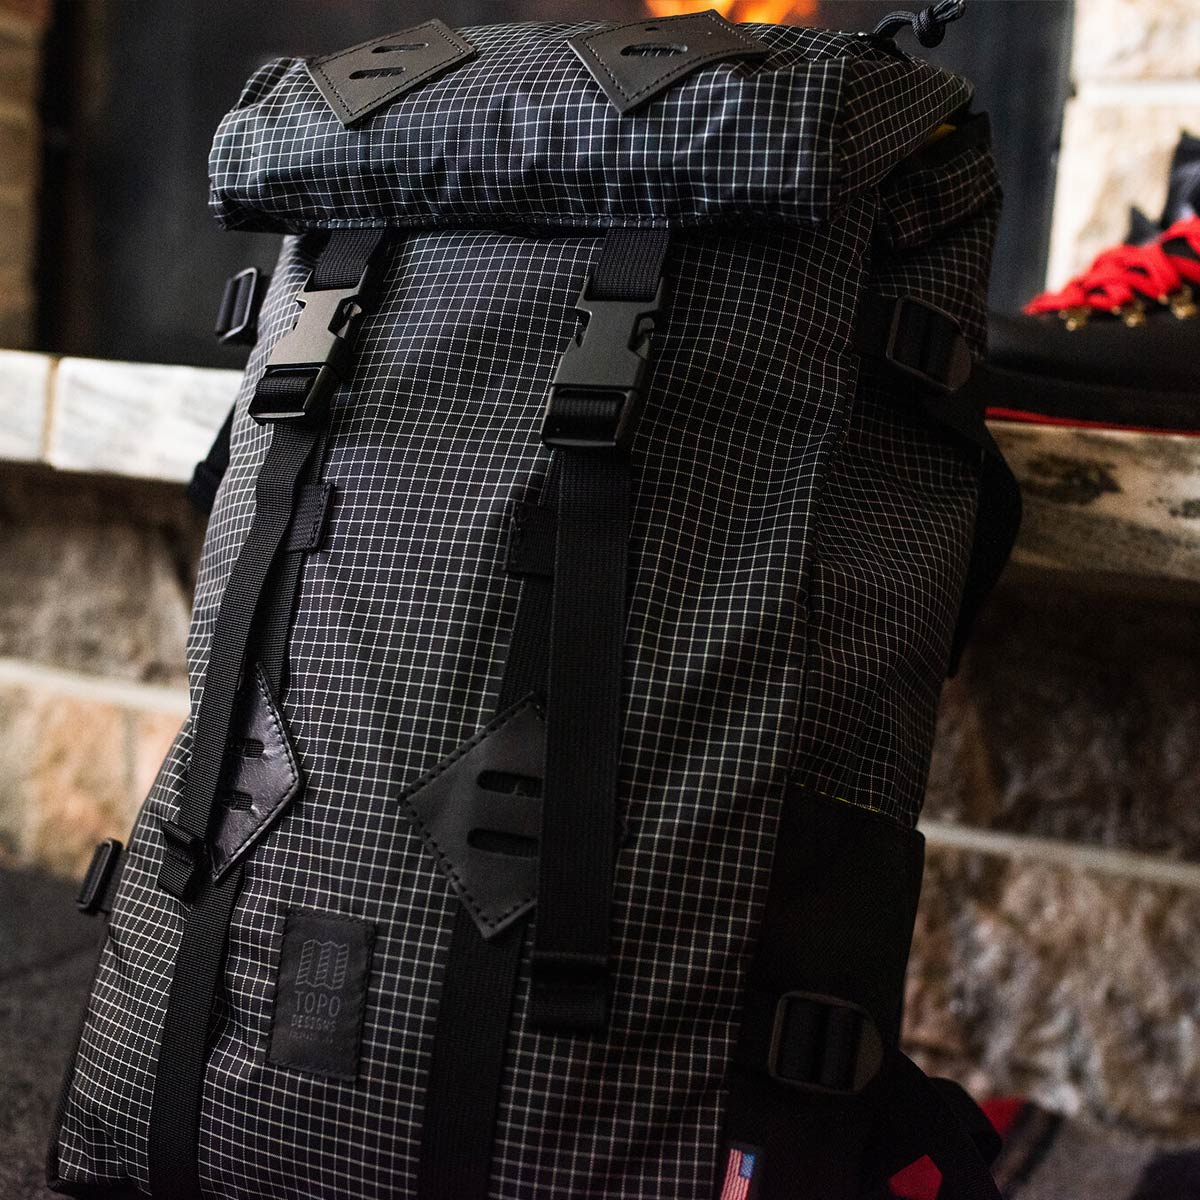 Topo Designs Klettersack Black/White Ripstop classic backpack in Ripstop from Topo Designs